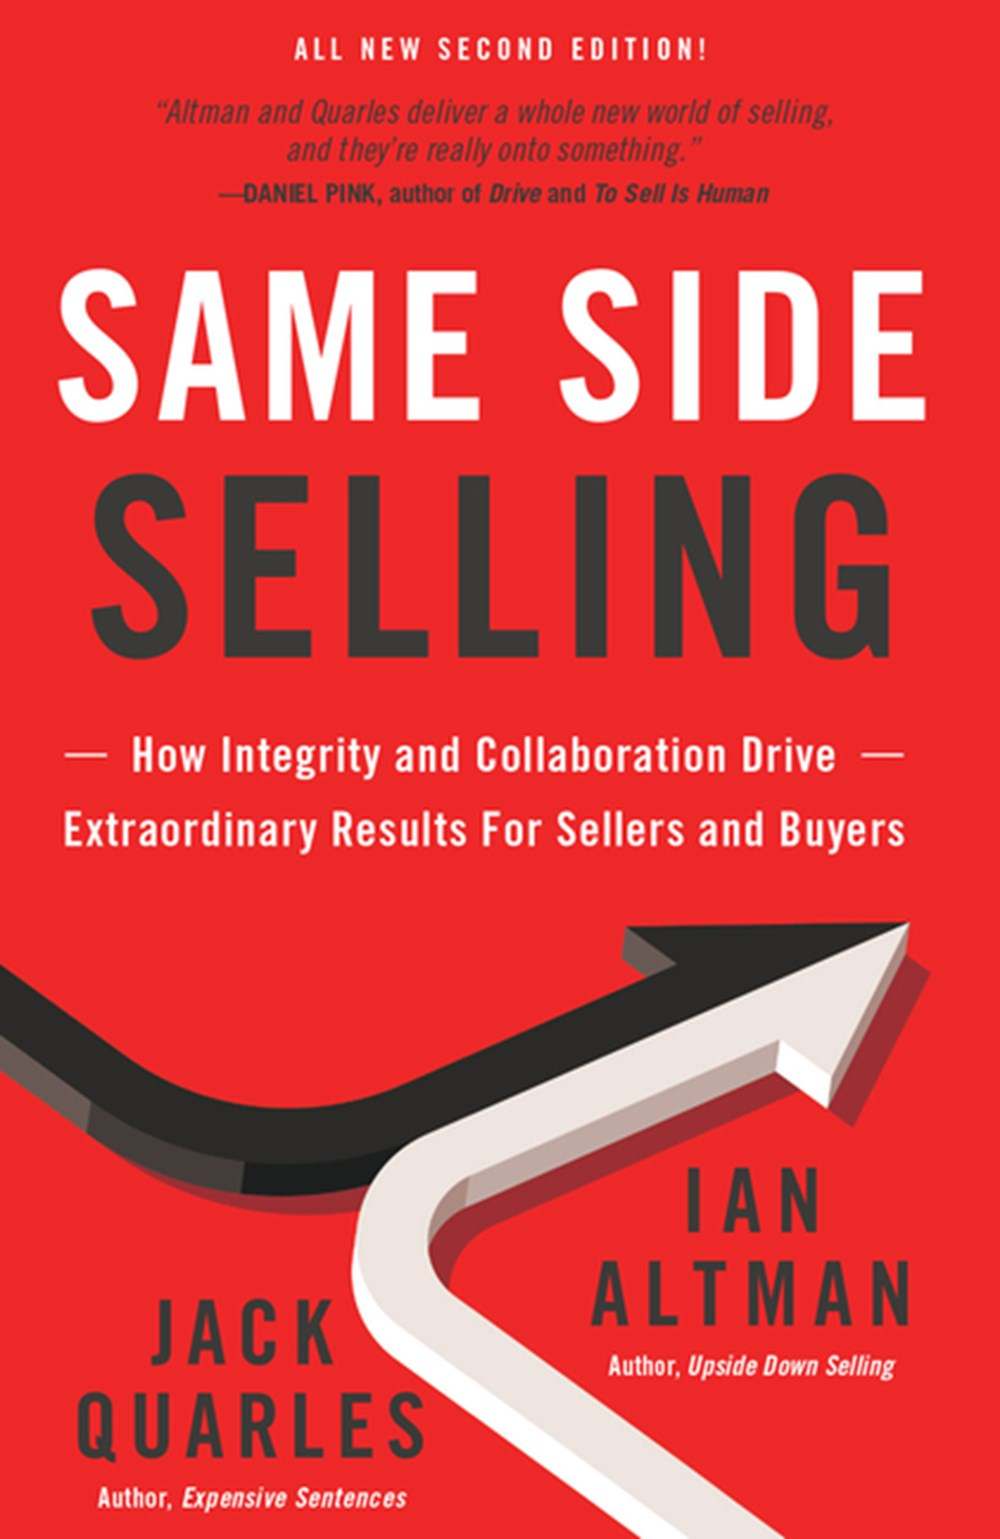 Same Side Selling: How Integrity and Collaboration Drive Extraordinary Results for Sellers and Buyer